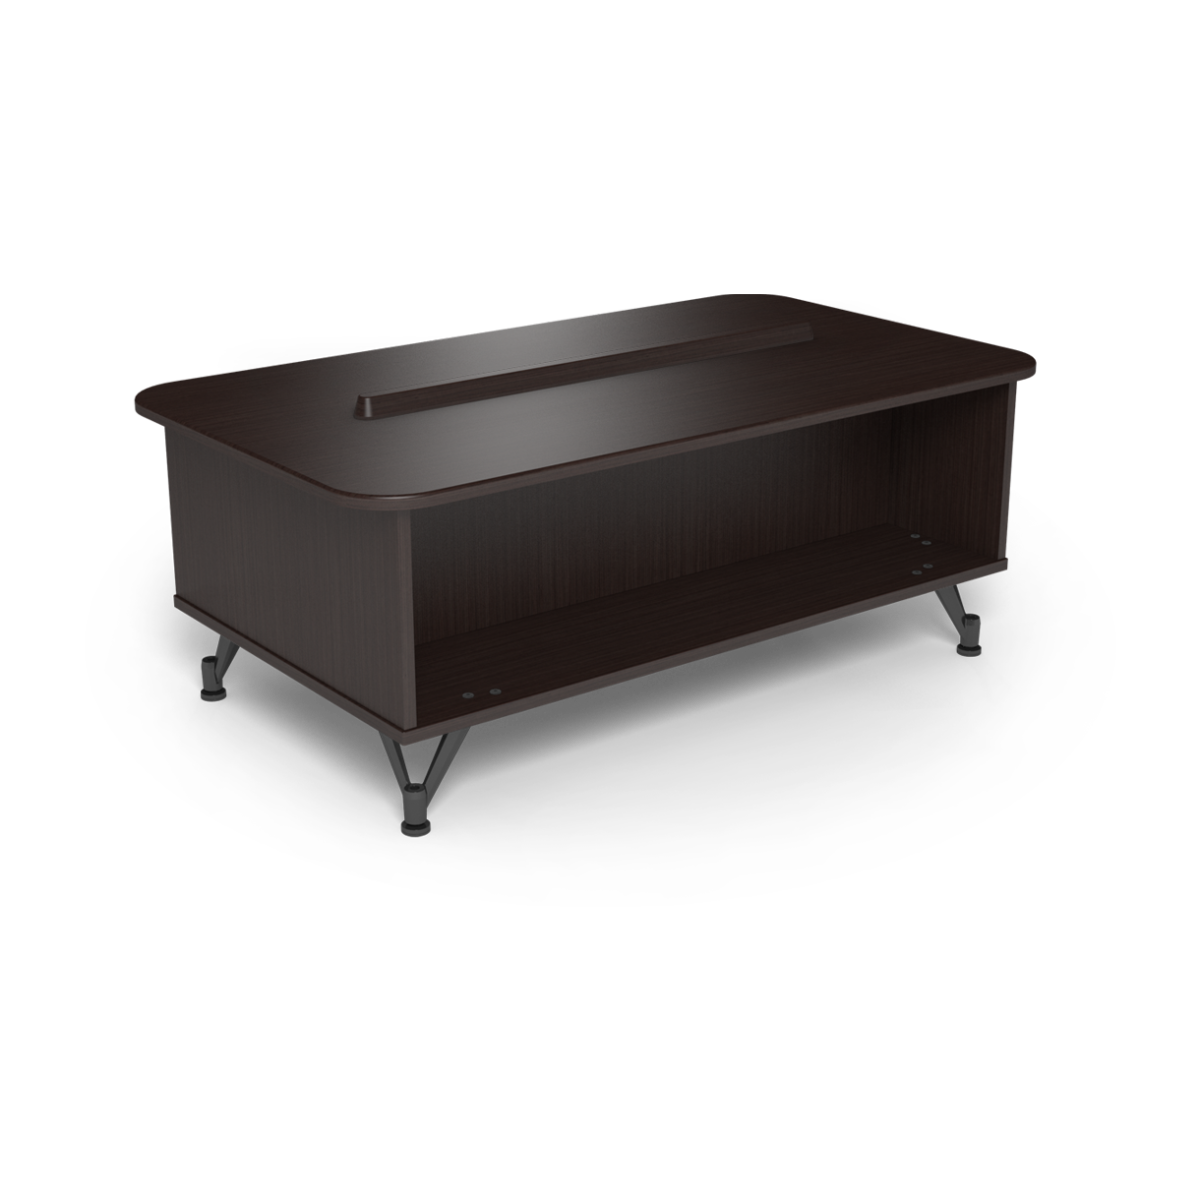 coffee tables with rounded corners brunswick bowling. Black Bedroom Furniture Sets. Home Design Ideas